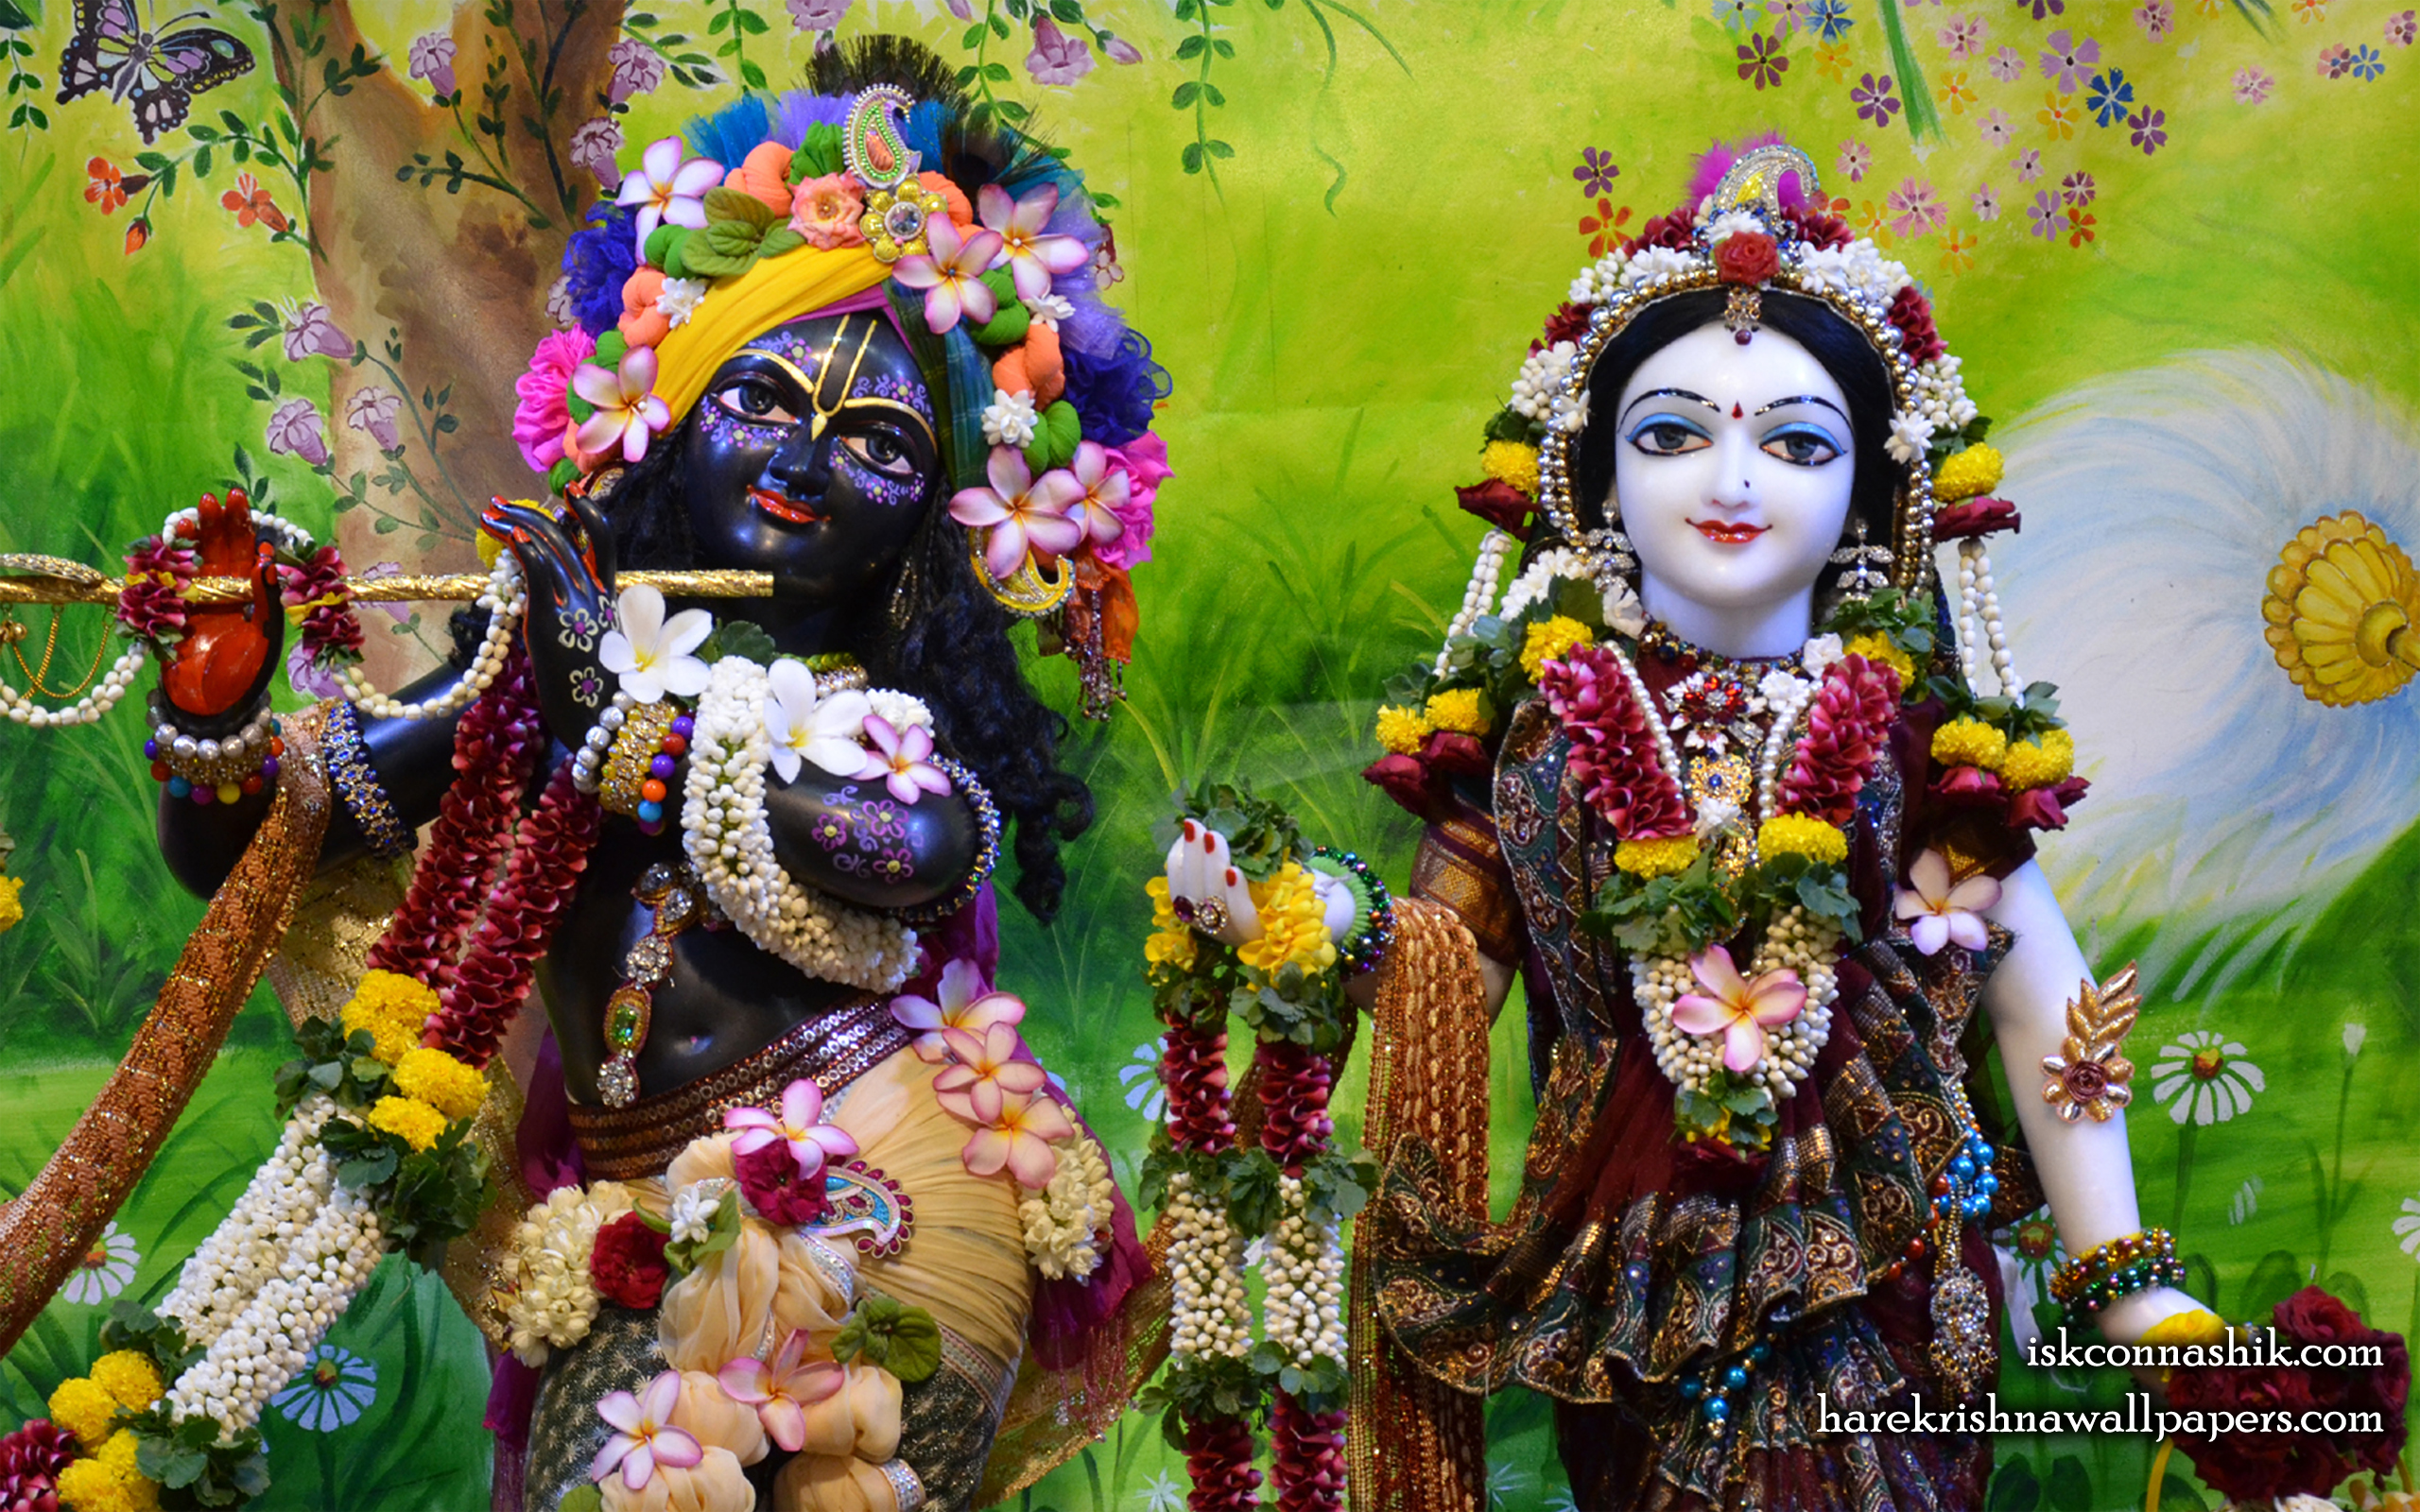 Sri Sri Radha Madan Gopal Close up Wallpaper (017) Size 2560x1600 Download